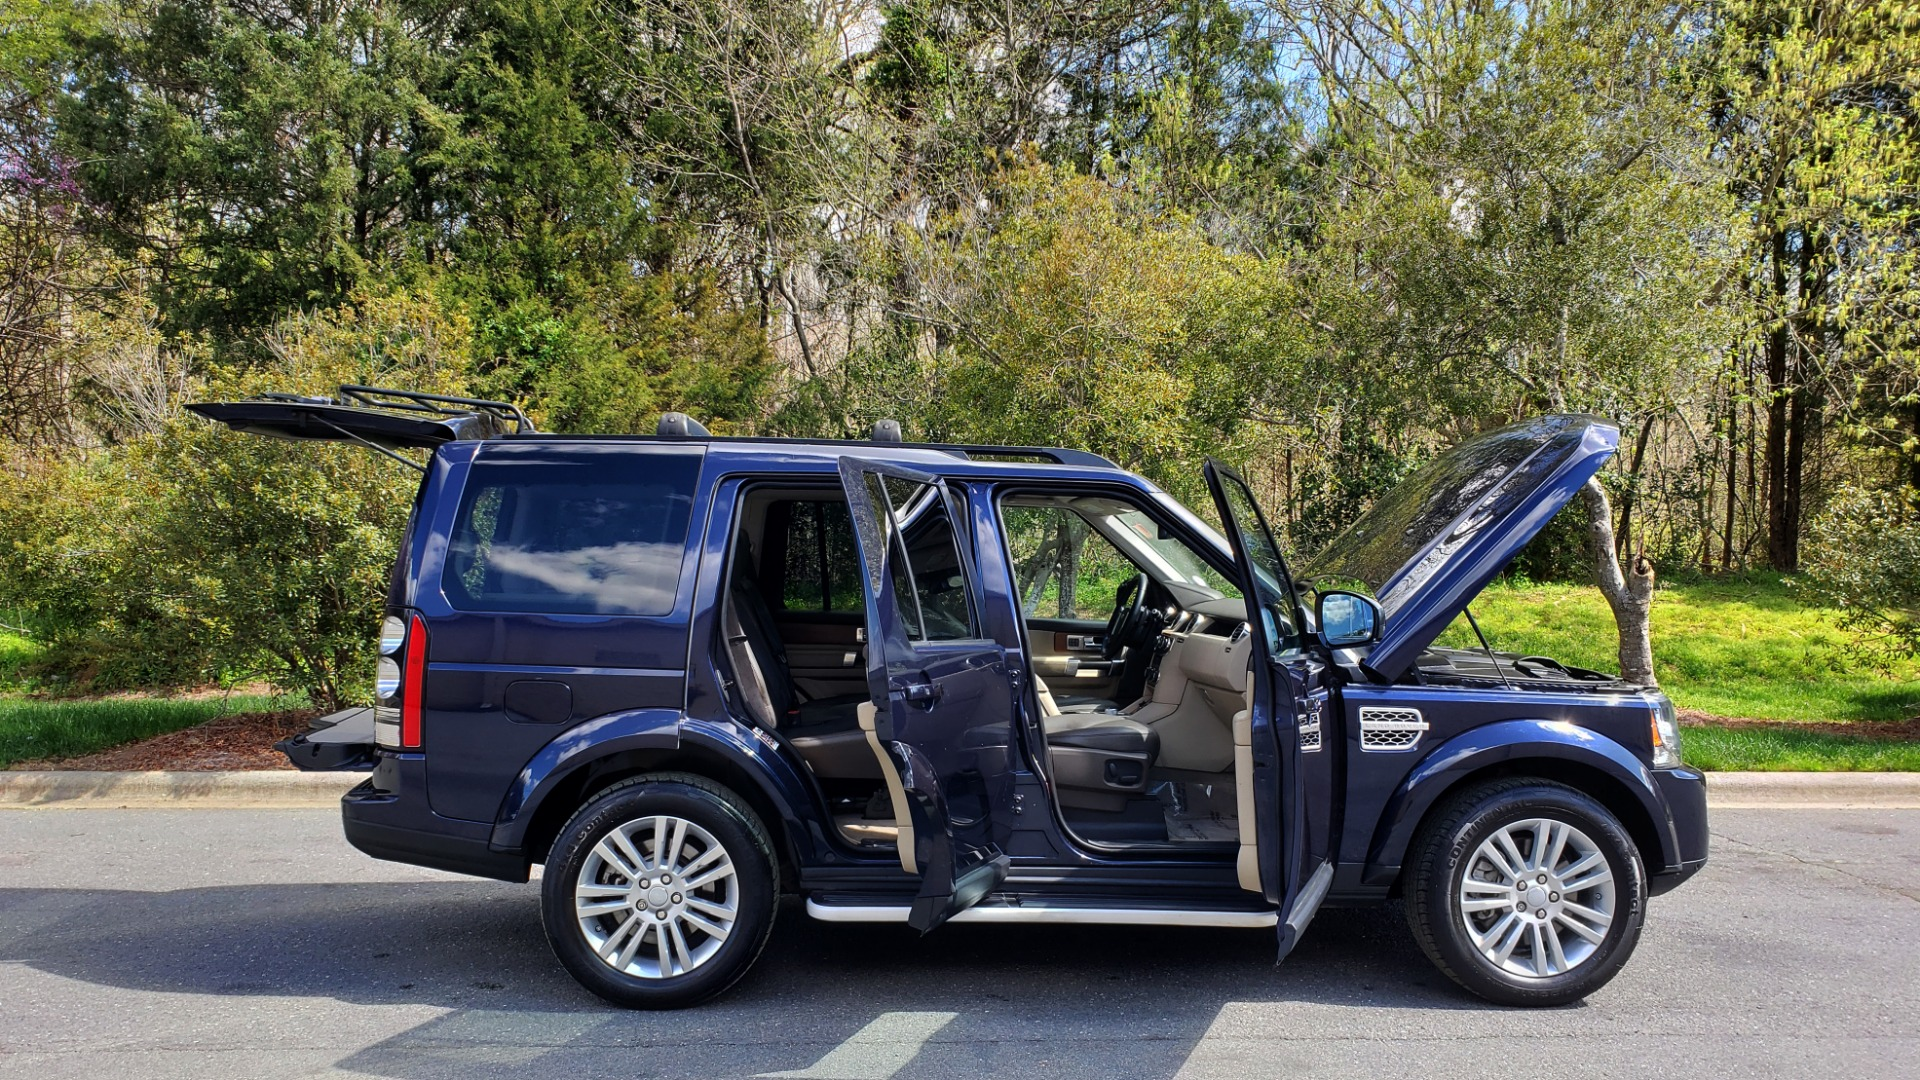 Used 2016 Land Rover LR4 HSE LUX / NAV / SUNROOF / MERIDIAN / REARVIEW / 3-ROW for sale Sold at Formula Imports in Charlotte NC 28227 10